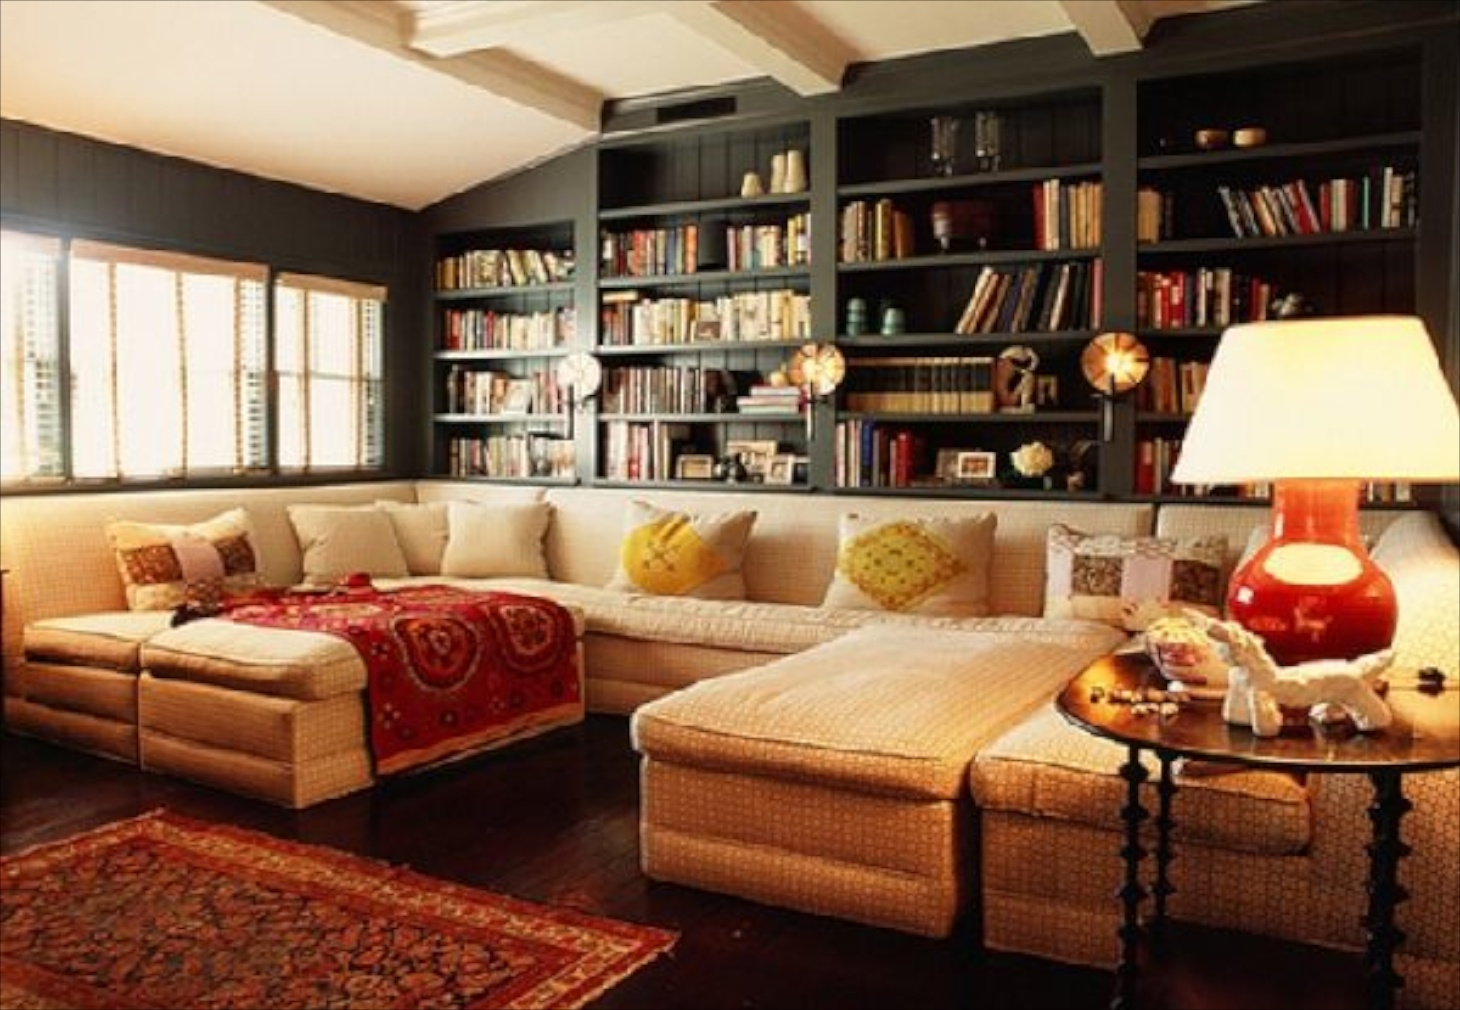 23 sofas and bookcase ideas in cozy living room design for Cozy family room designs